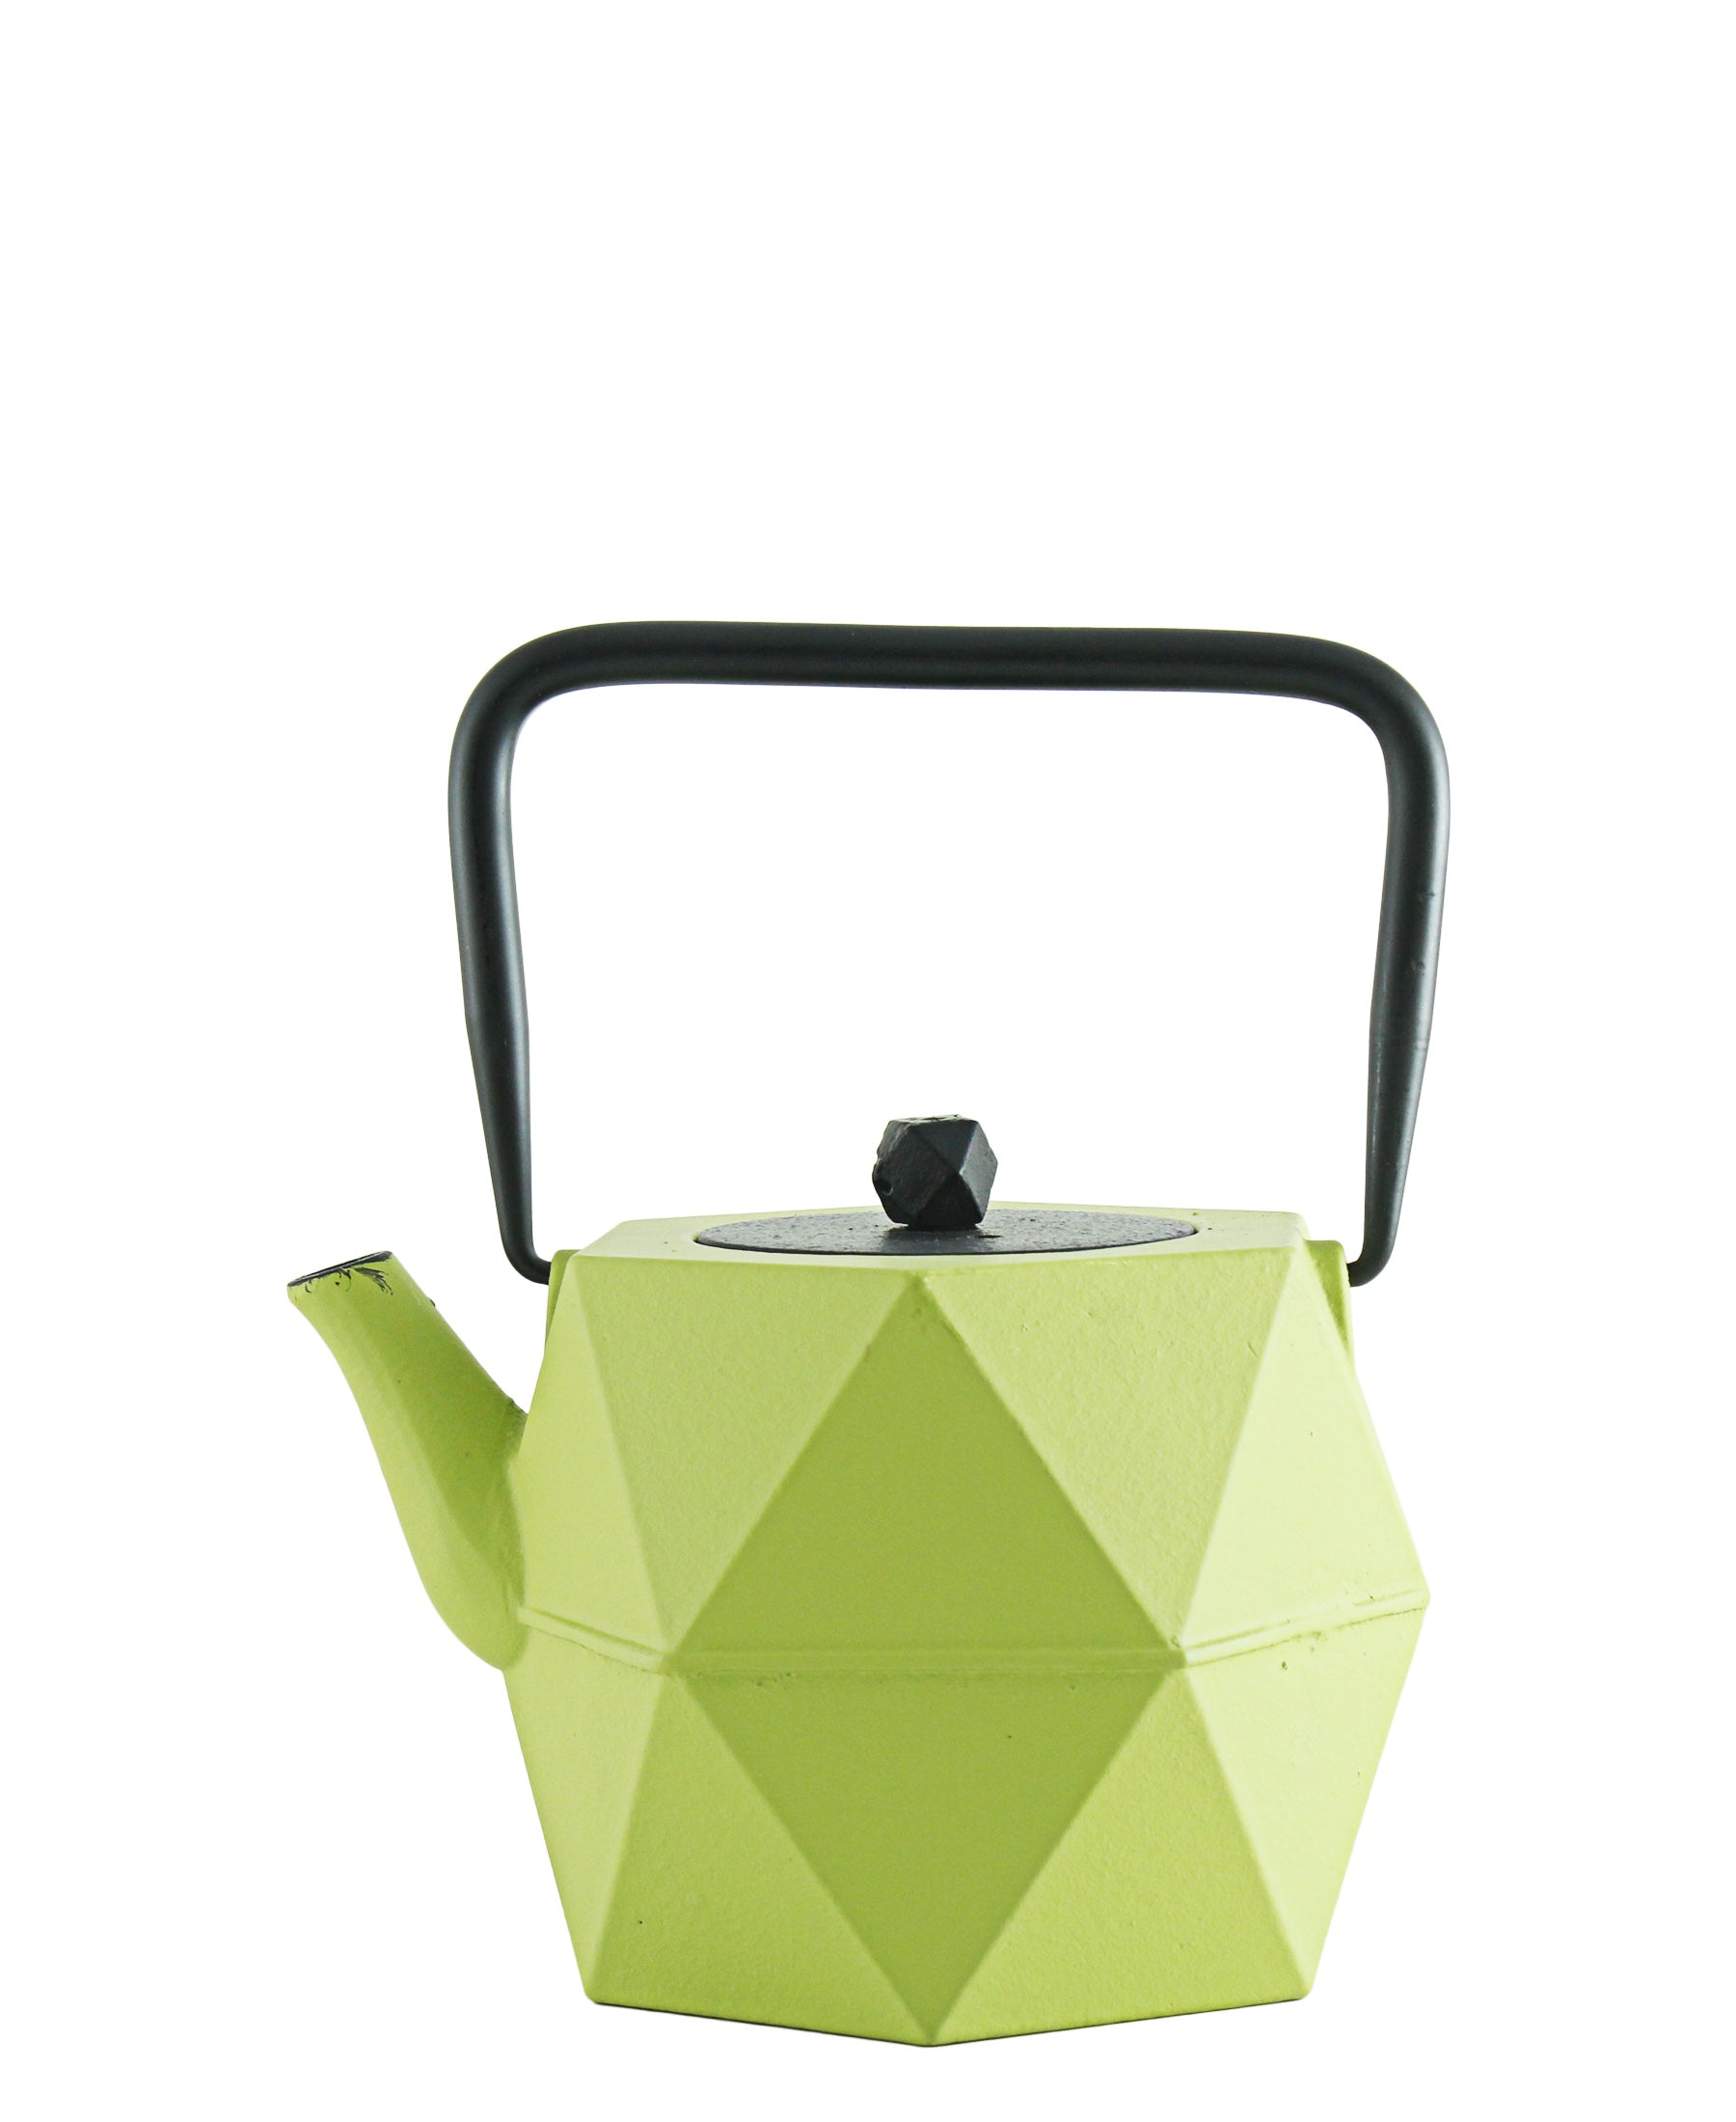 The Culinarium Diamond Japanese Tea Pot